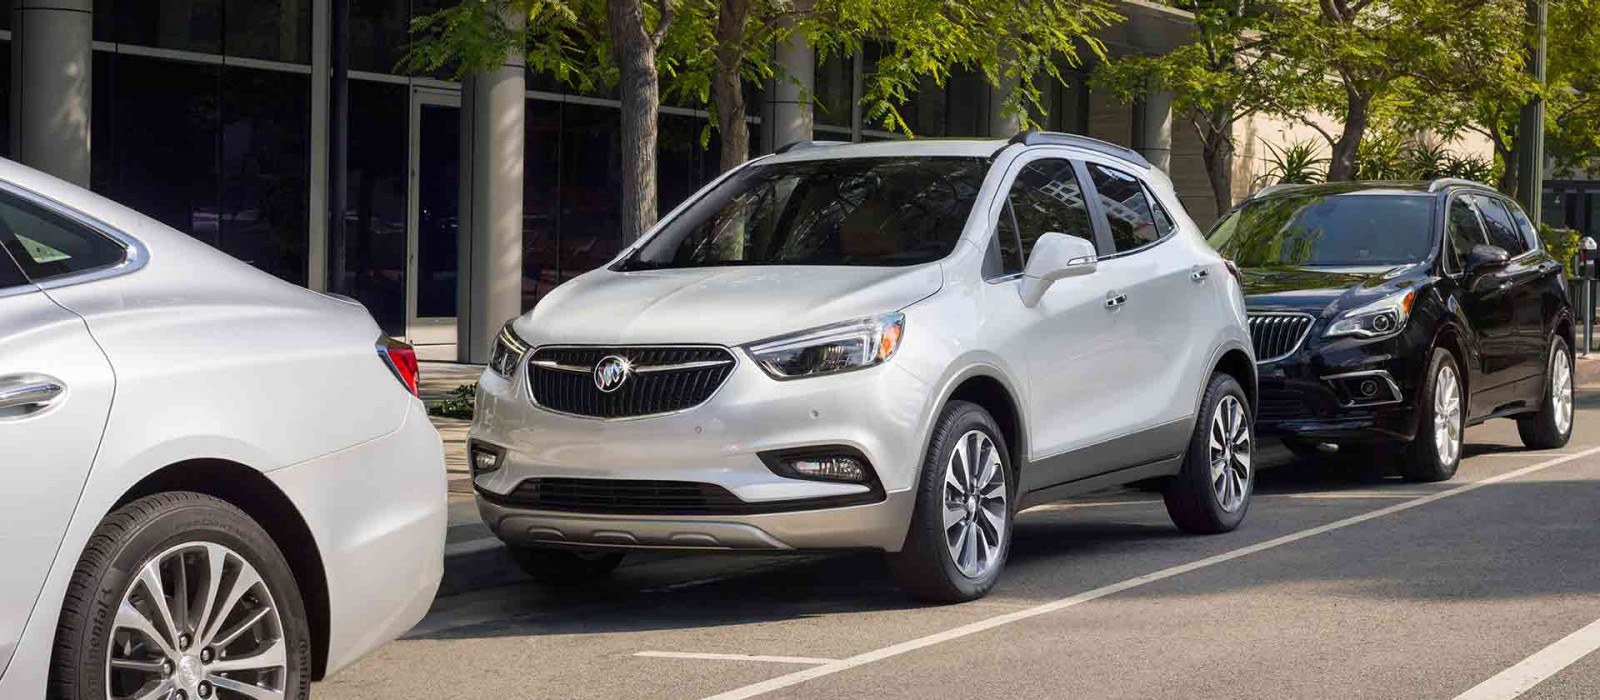 story subcompact buick classified refreshed for chicago tribune automotive encore crossover